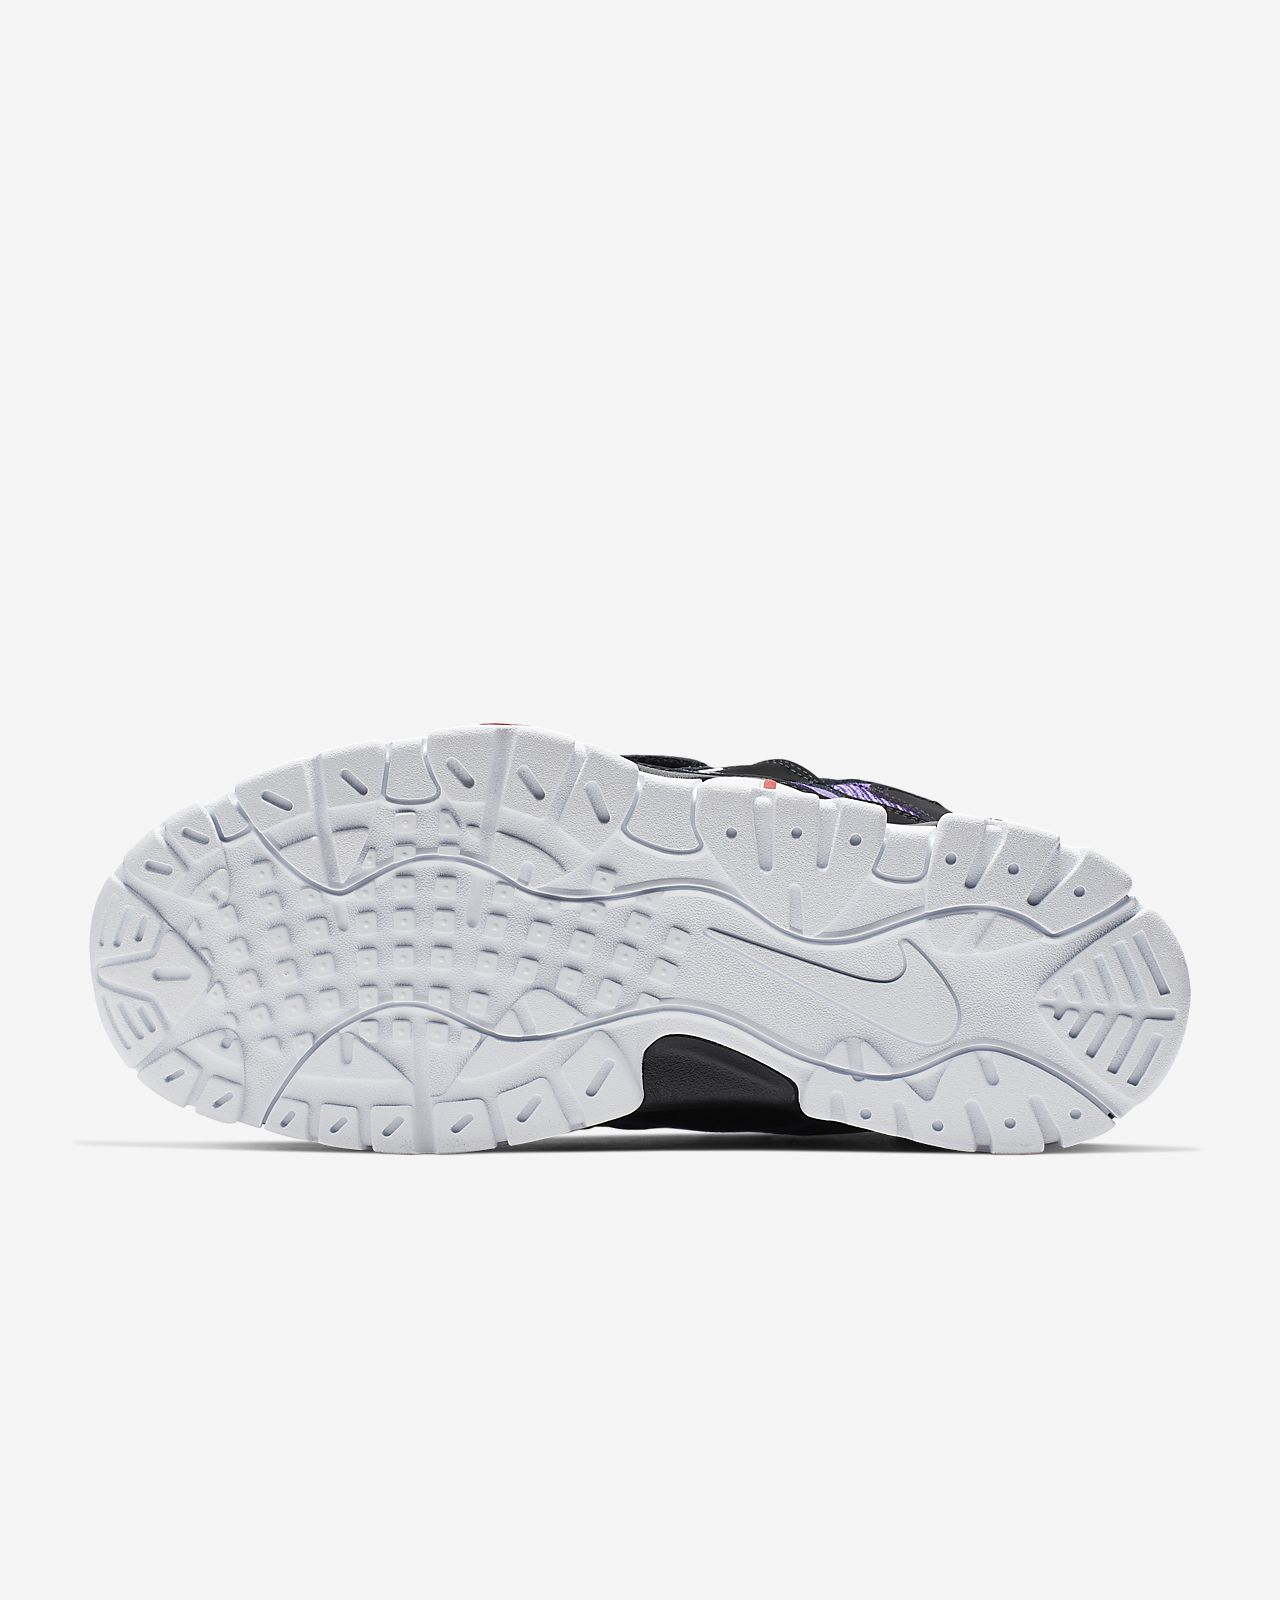 Snipes USA The NIKE Air Max Uptempo 95 | $160 | US Men's